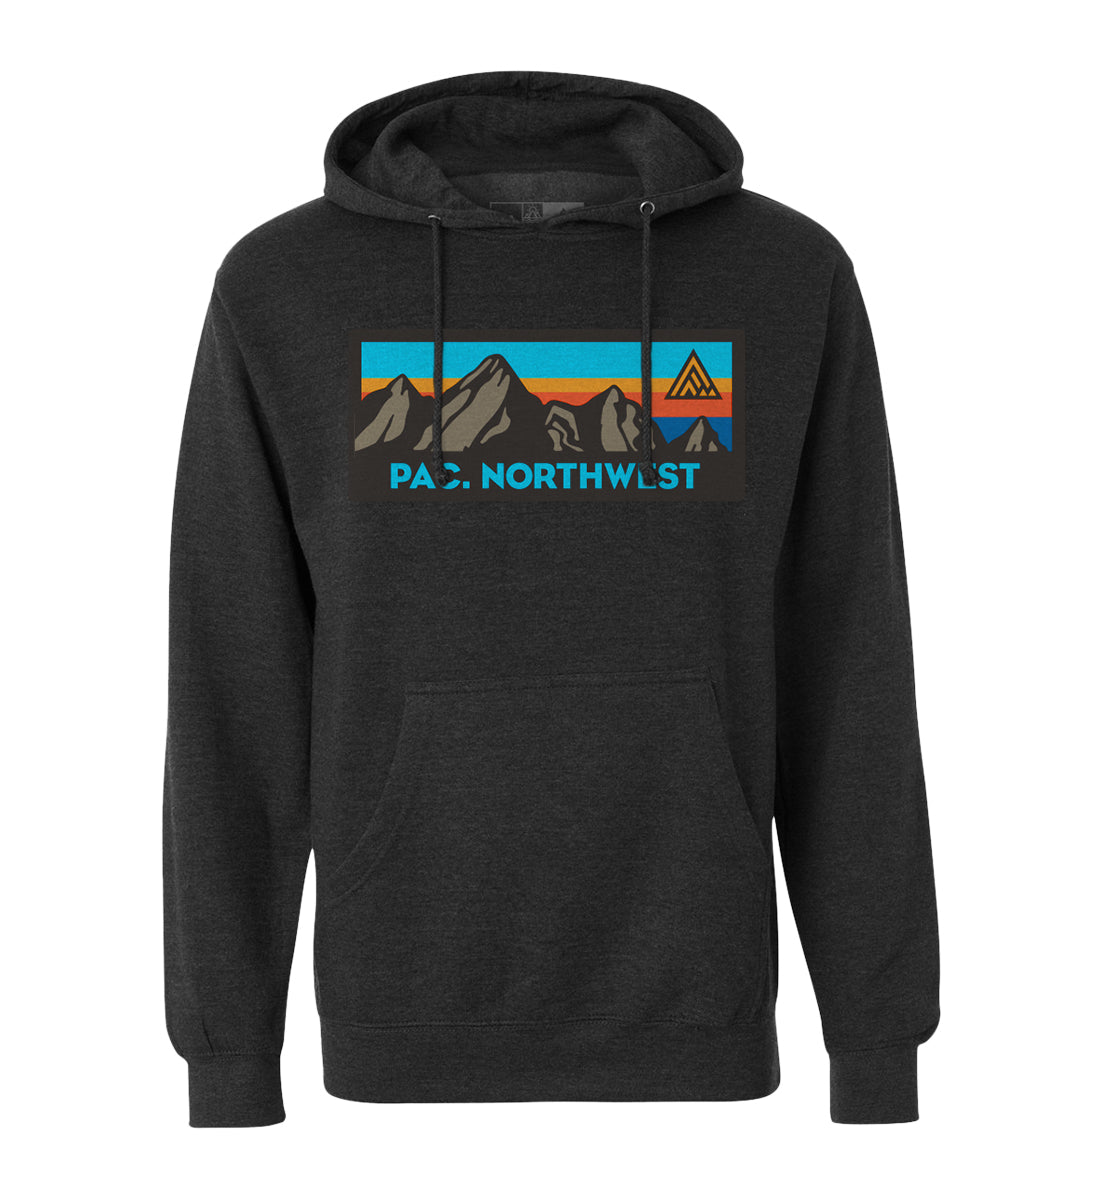 Blazer Hoodie - The Great PNW